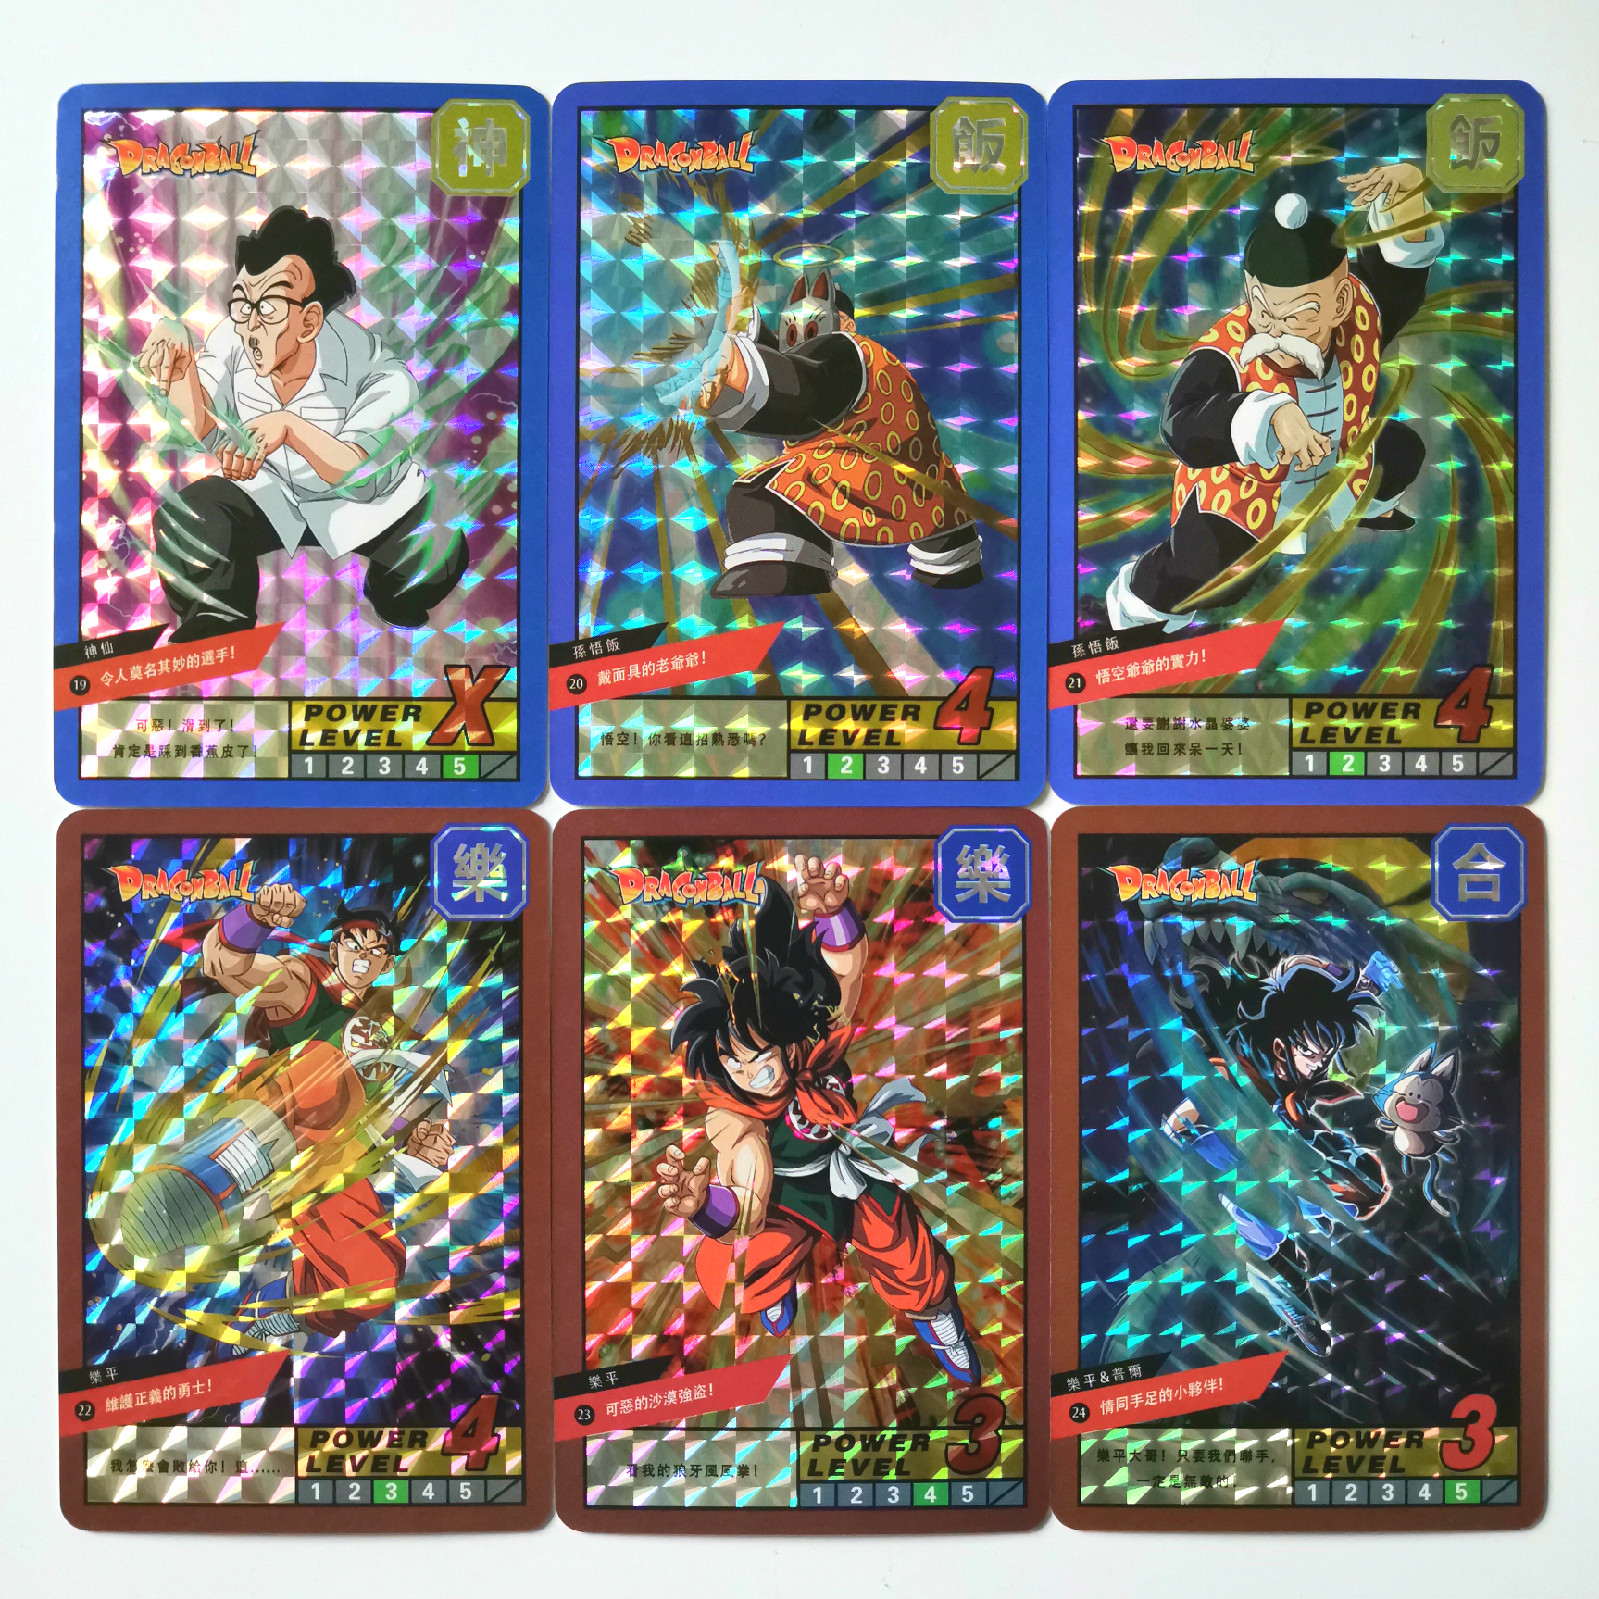 18pcs/set Super Dragon Ball Z Heroes Battle Card Ultra Instinct Goku Vegeta Game Collection Cards